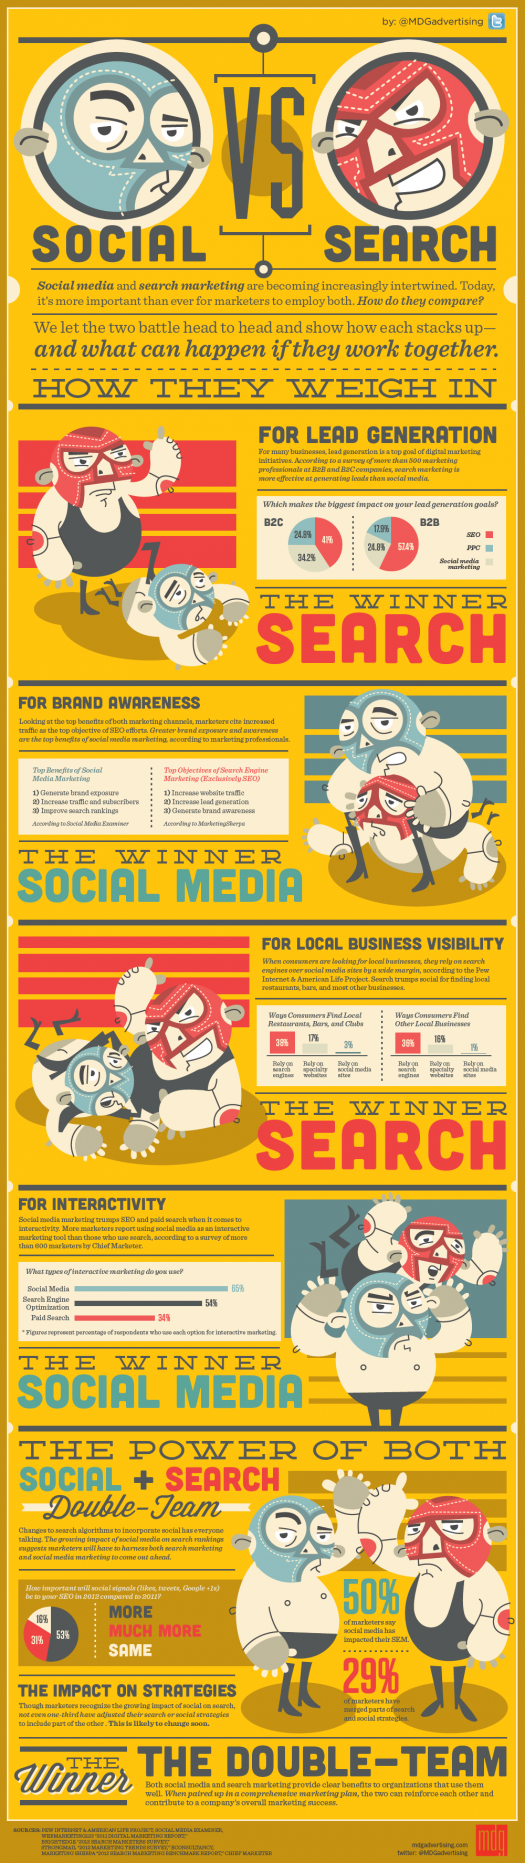 Social Media vs Search Marketing-Infographic